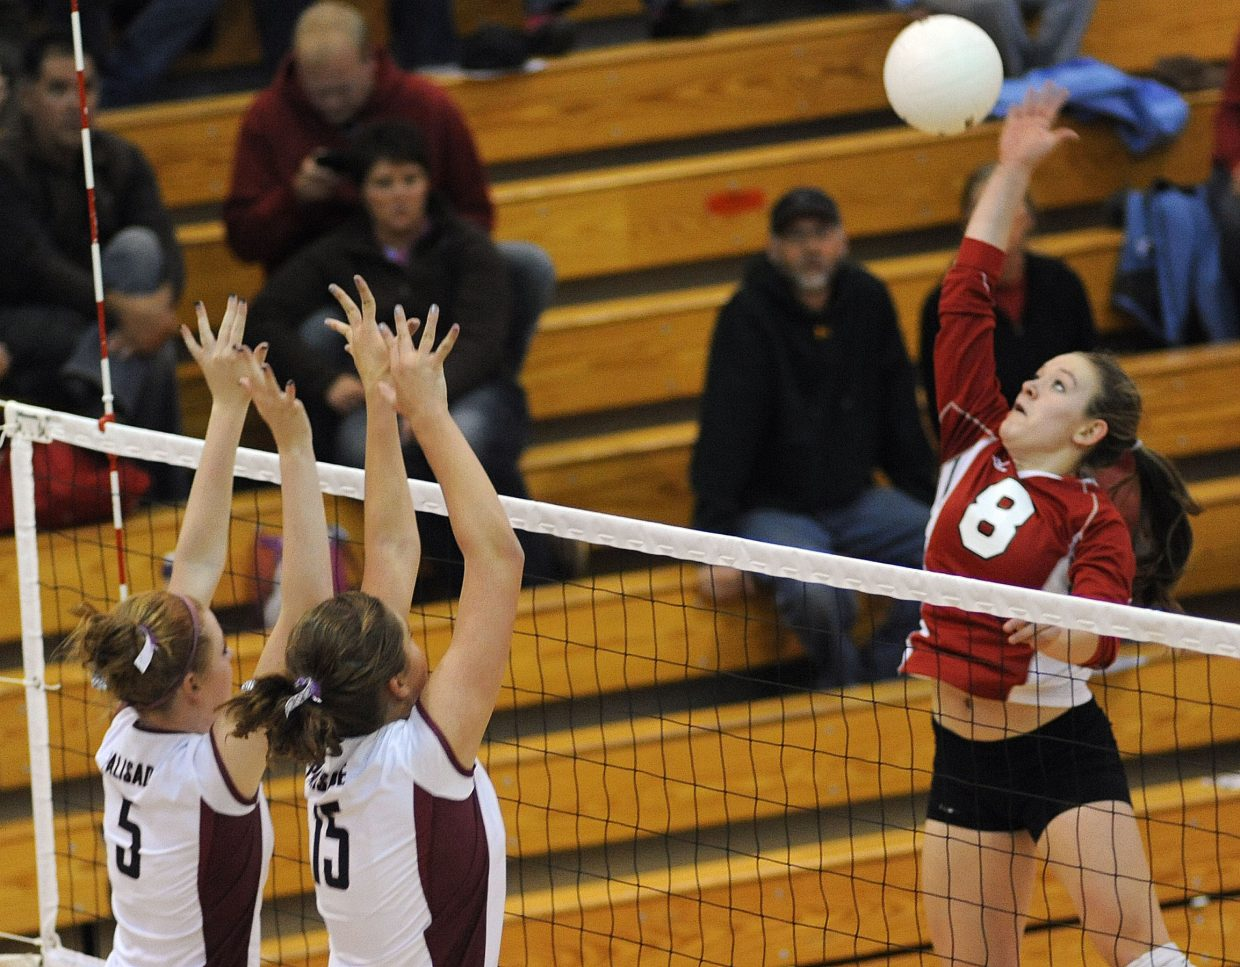 Nikki Fry swings for the ball Saturday against Palisade.